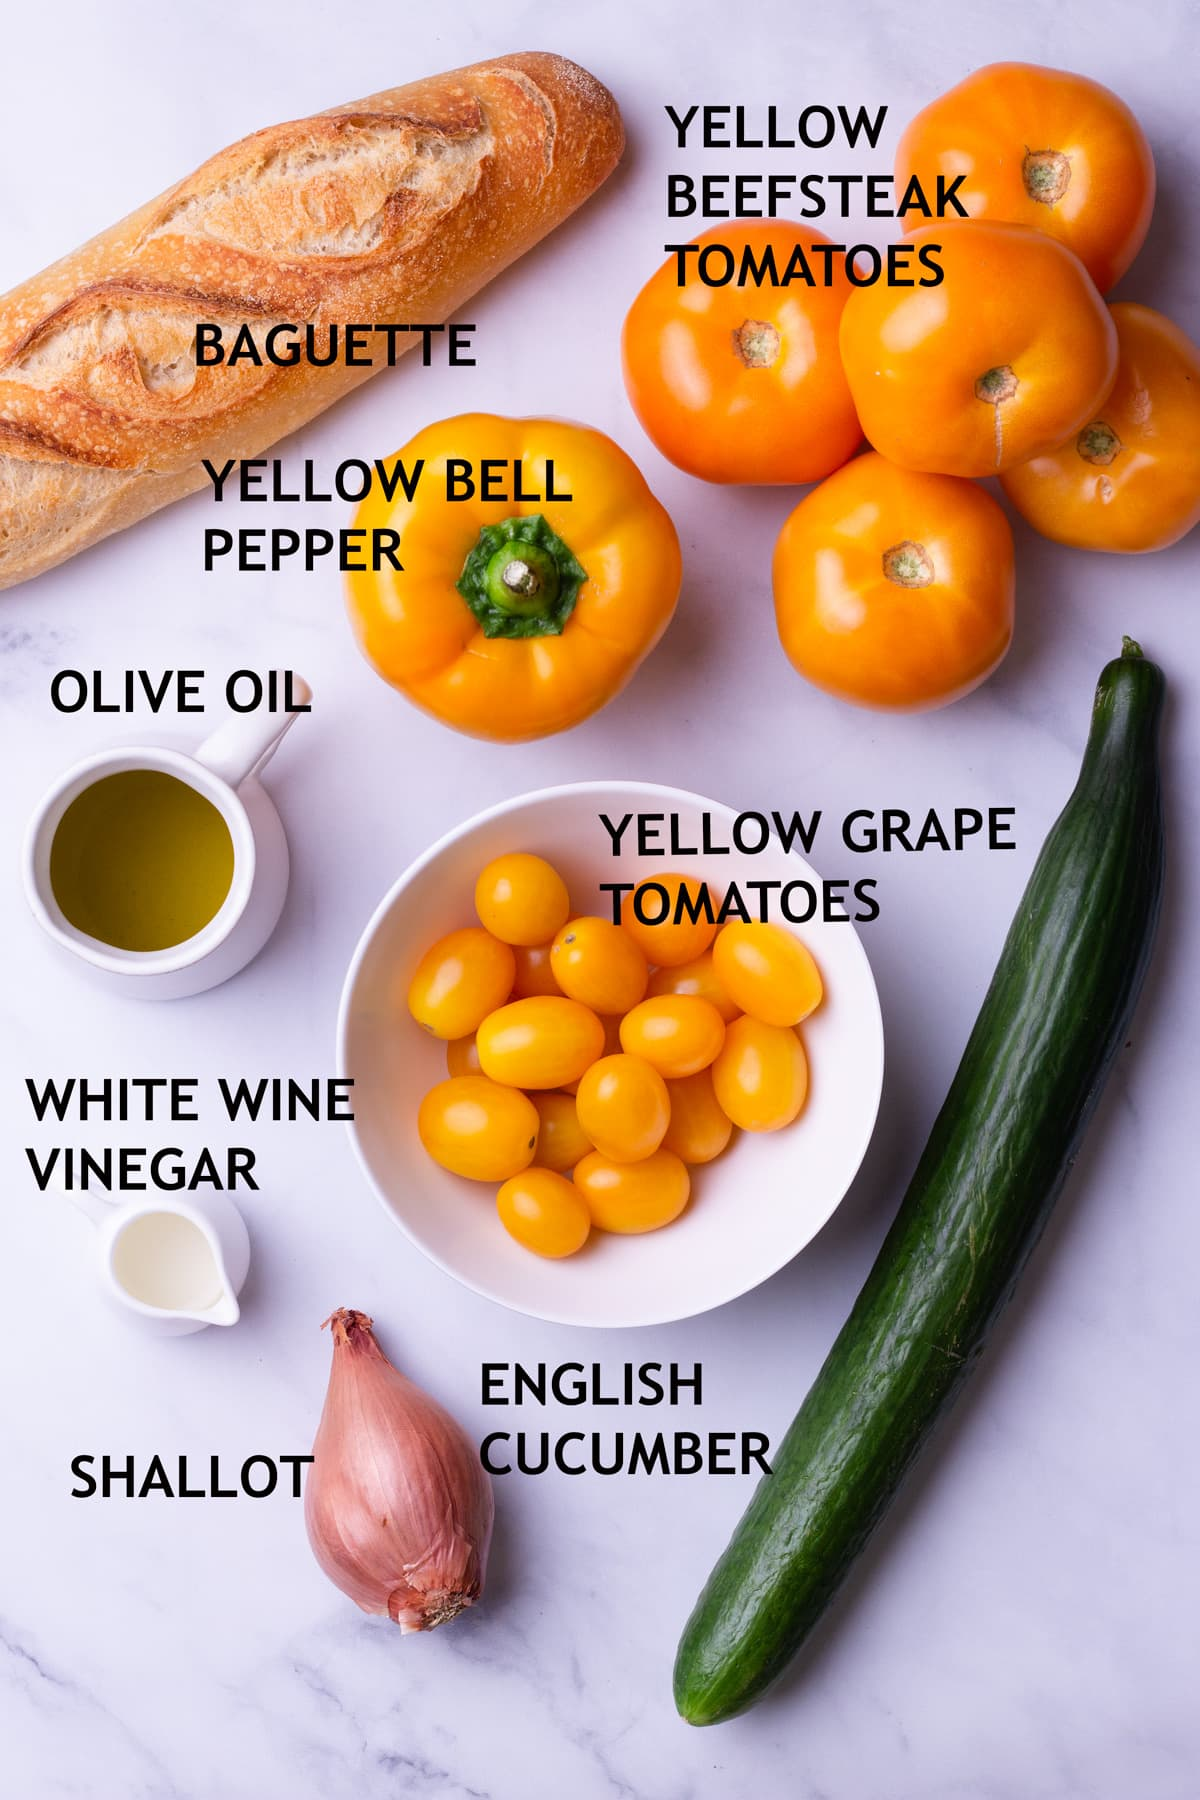 Overhead view of ingredients for gazpacho including bread, yellow tomatoes, a yellow bell pepper, an English cucumber, a shallot, olive oil, and white wine vinegar.